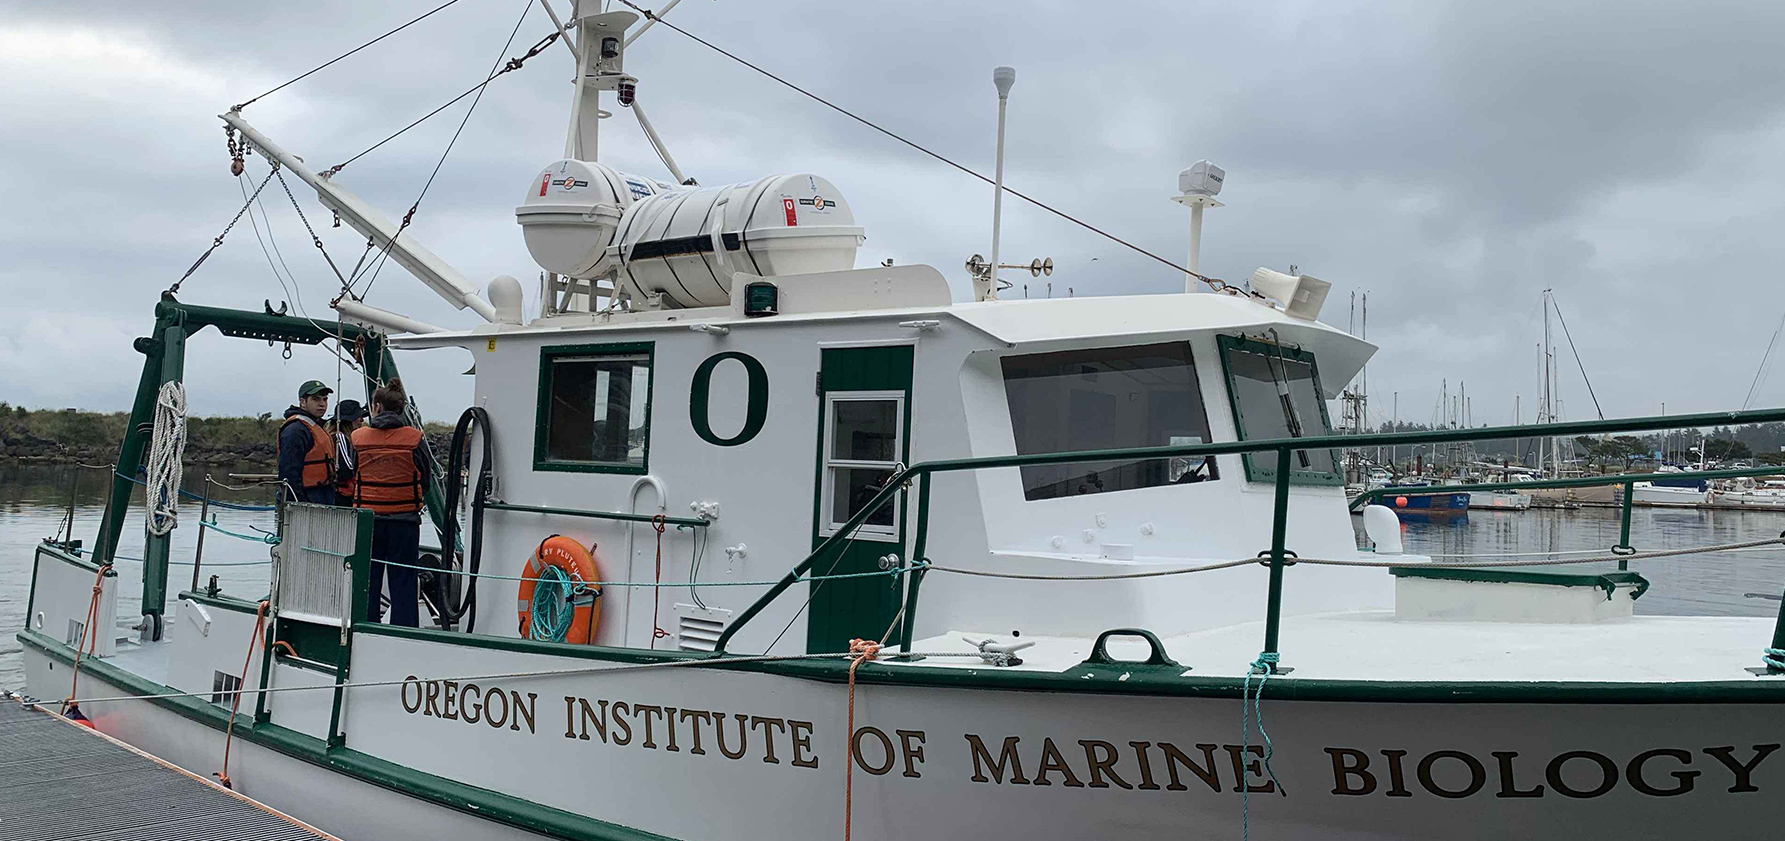 An Oregon Institute of Marine Biology boat